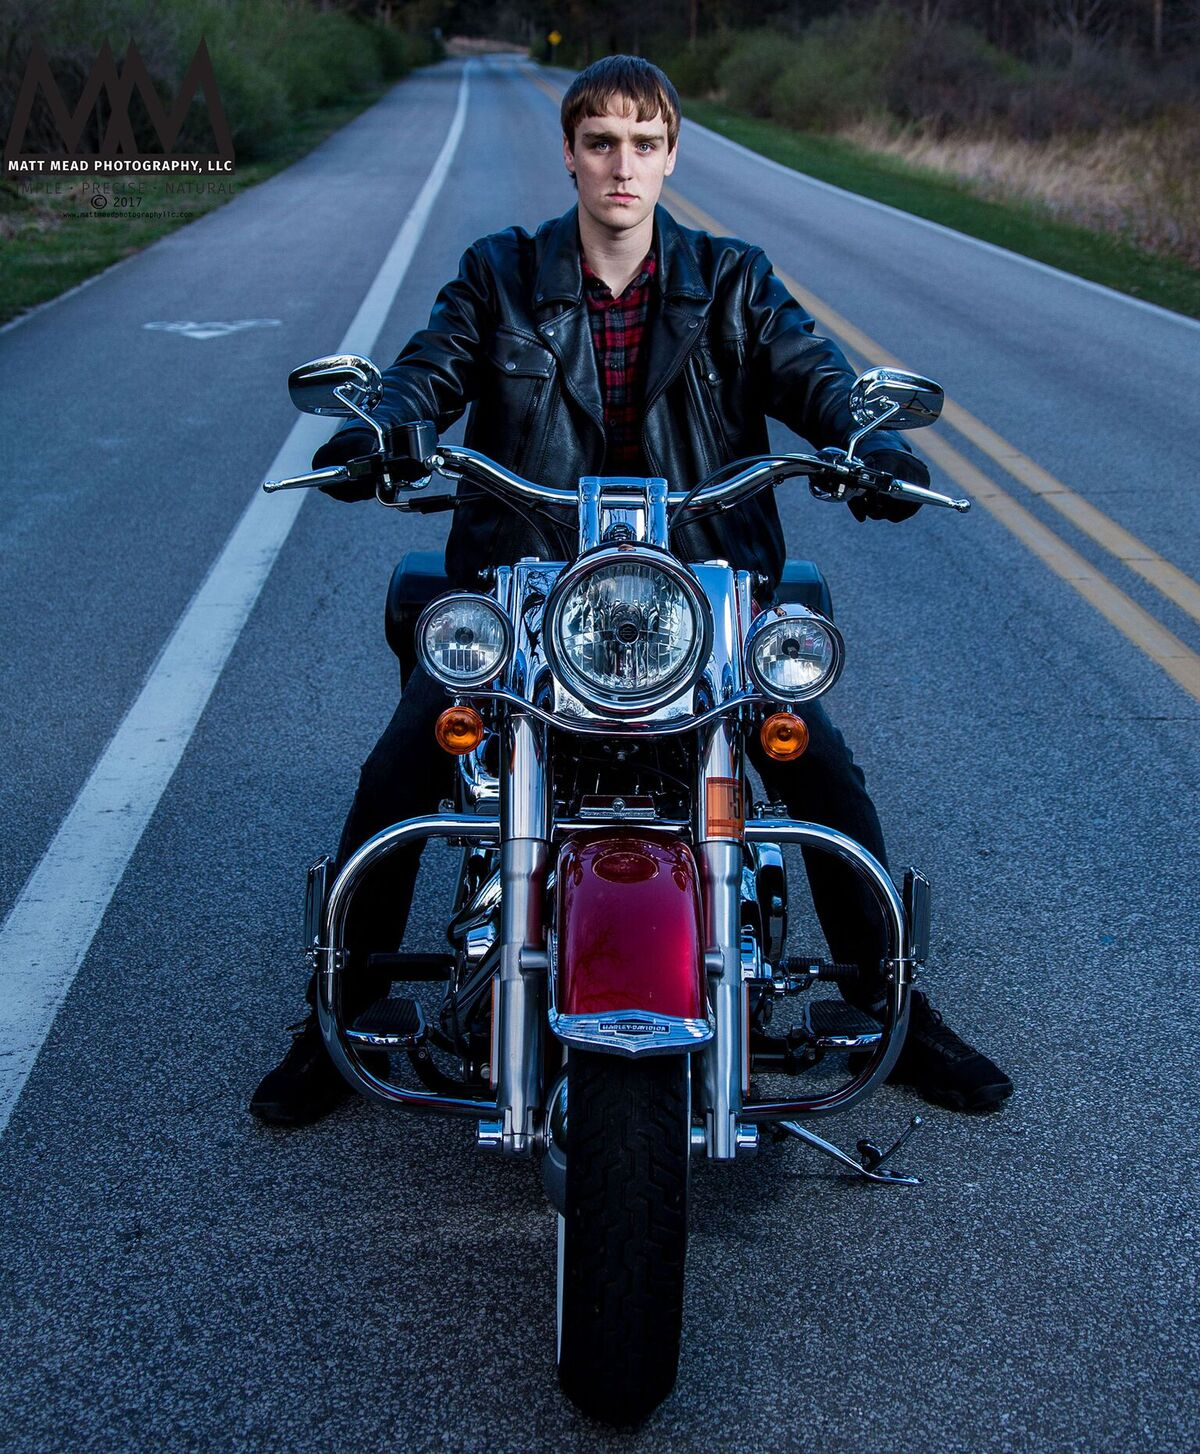 teen poses on motorcycle Erie PA senior portrait session at Presque Isle state Park